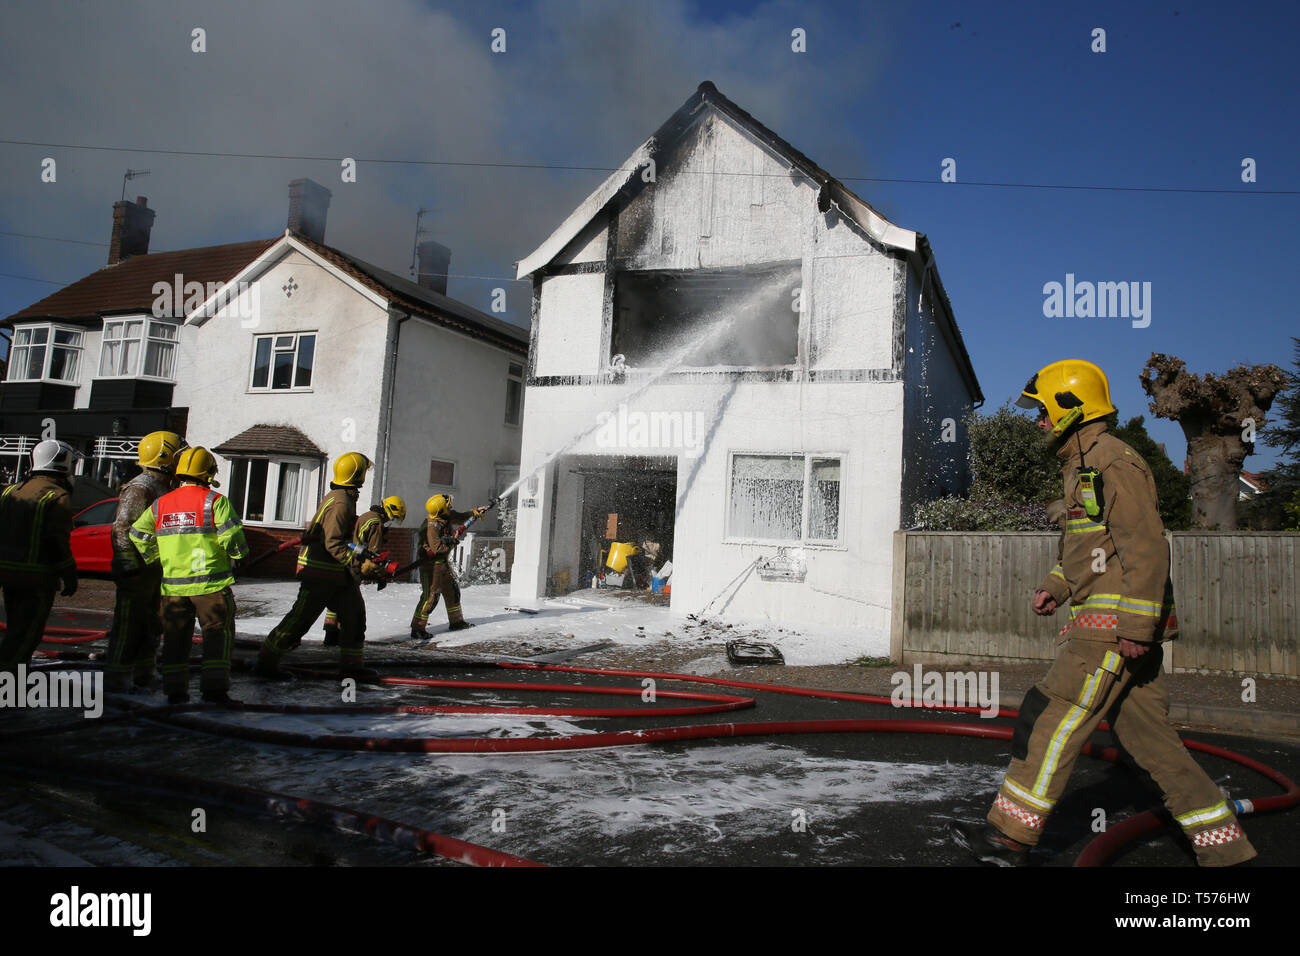 Firemen And House Fire Uk Stock Photos Amp Firemen And House